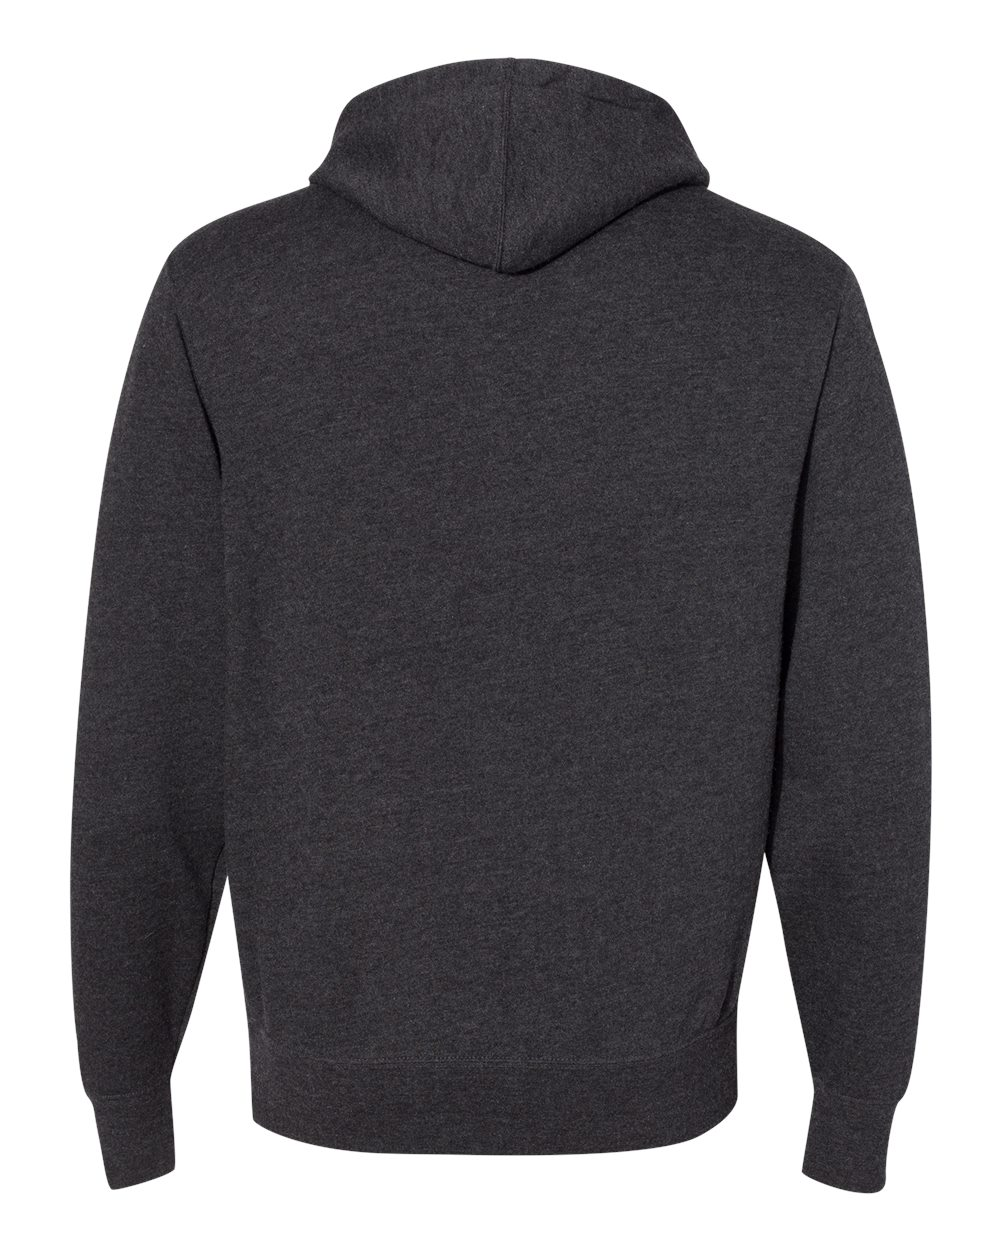 Independent-Trading-Co-Unisex-Hooded-Pullover-Blank-Plain-AFX90UN-up-to-3XL thumbnail 13